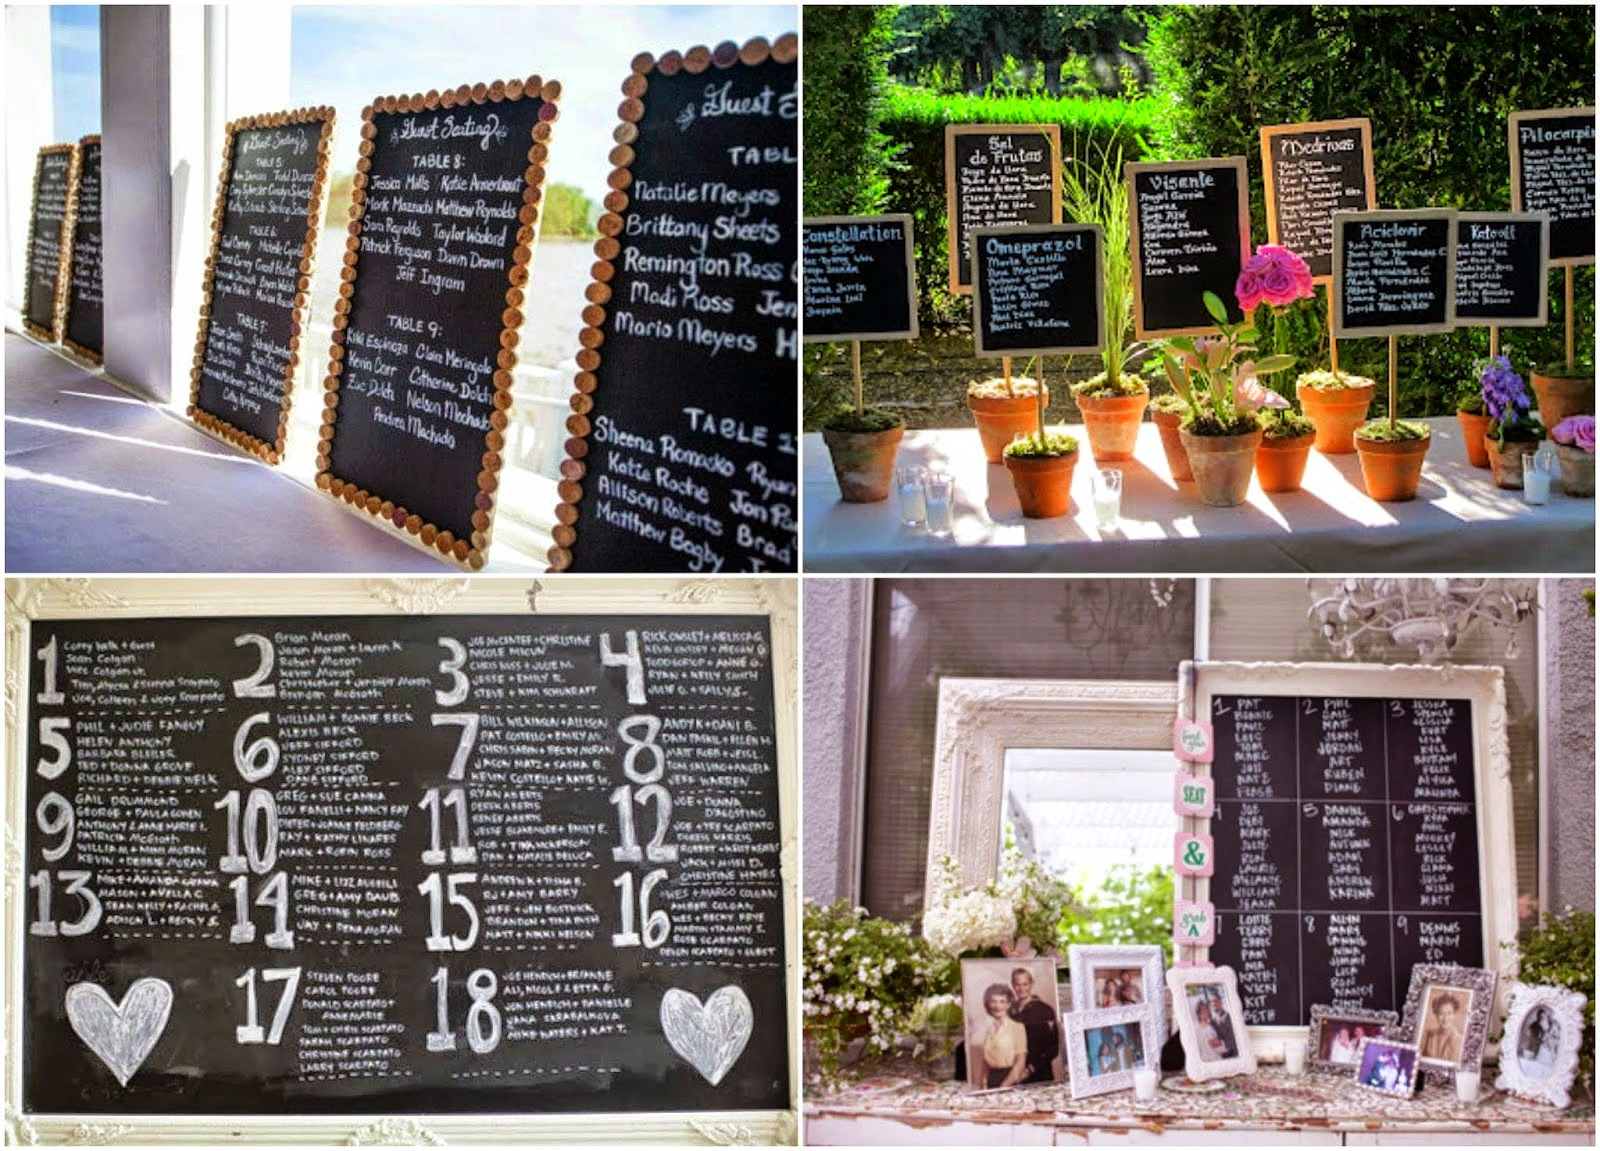 Bodas cucas 5 ideas originales para tu seating plan de boda - Ideas de bodas originales ...